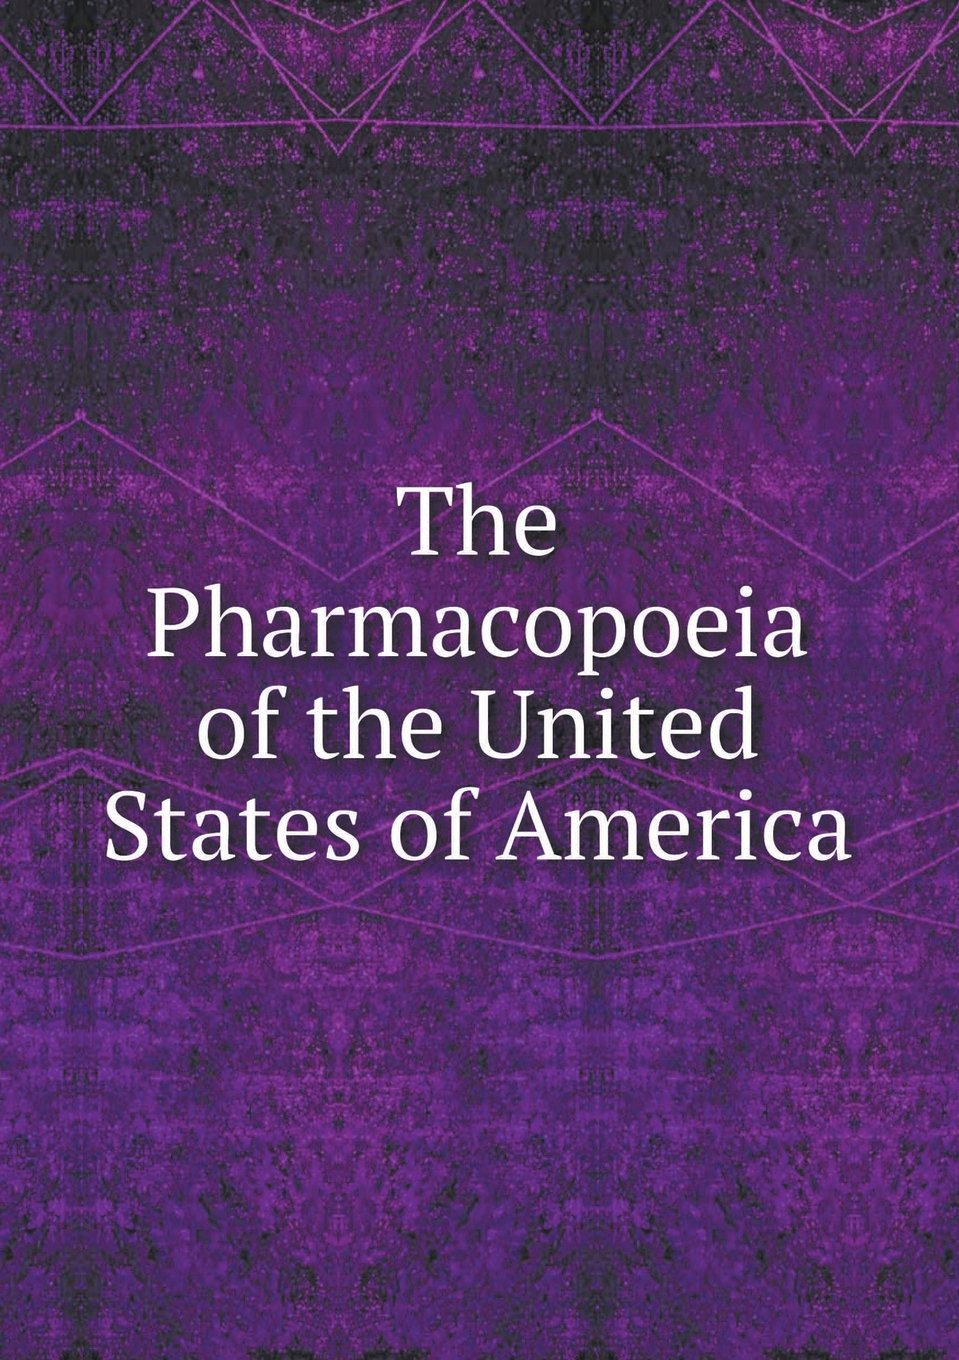 Download The Pharmacopoeia of the United States of America PDF